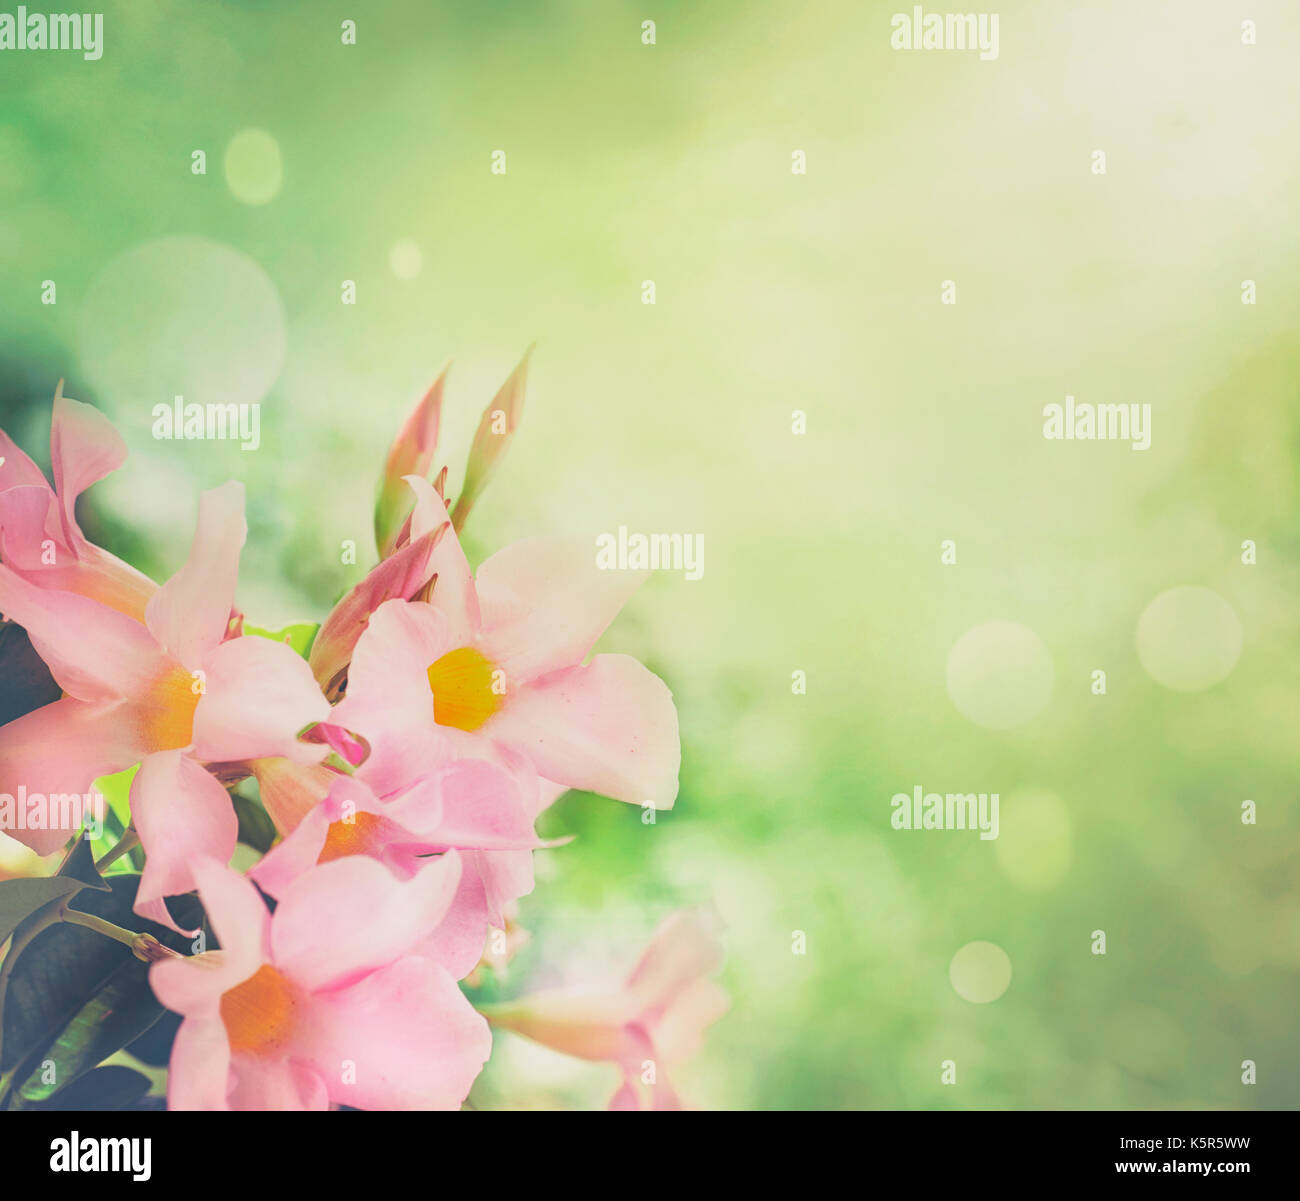 Flower Background Spring Flowers Border Design Spring Blossom